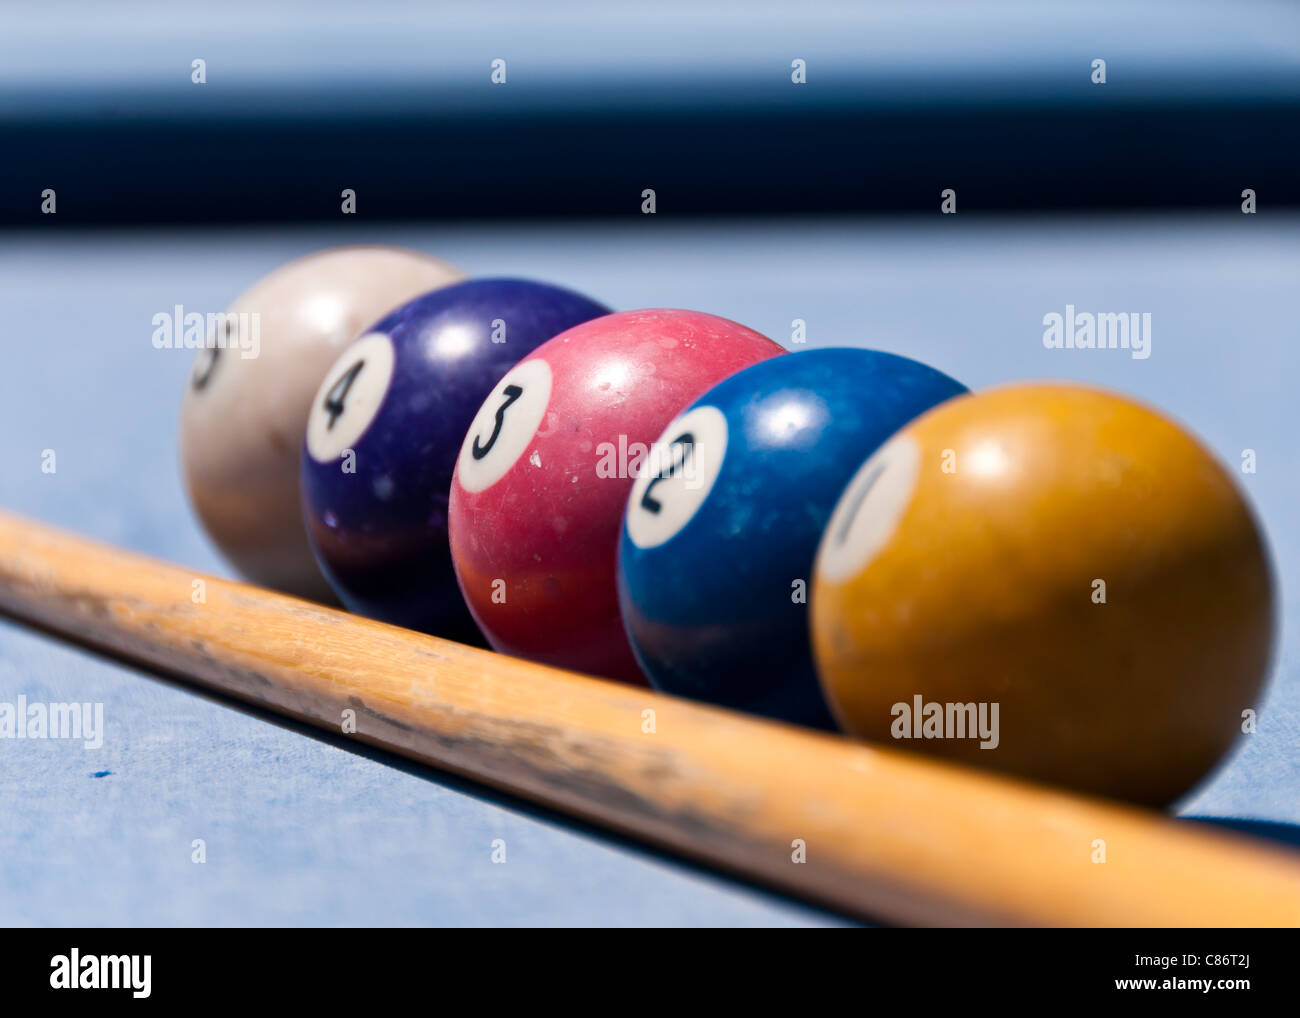 Cue and pool balls on a blue pool table shot outside - Stock Image